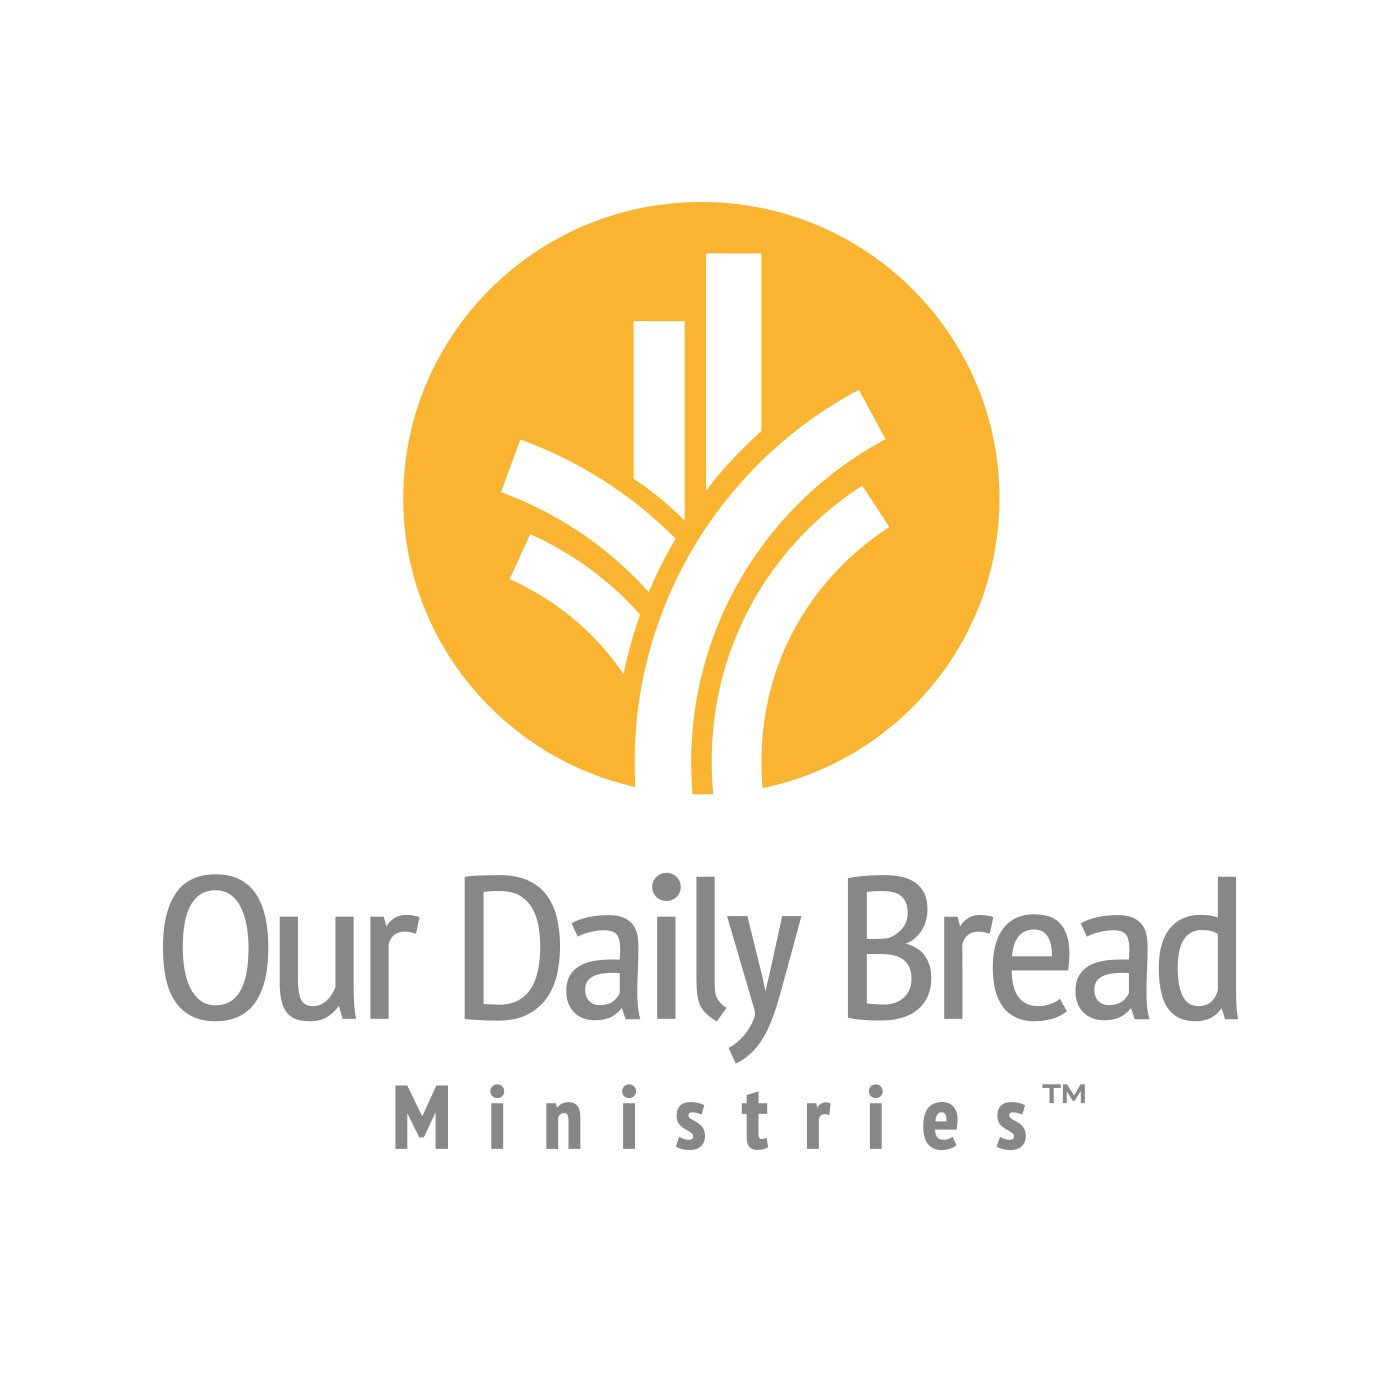 Our Daily Bread 1st June, Our Daily Bread 1st June 2019 – Objects in Mirror, Latest Nigeria News, Daily Devotionals & Celebrity Gossips - Chidispalace